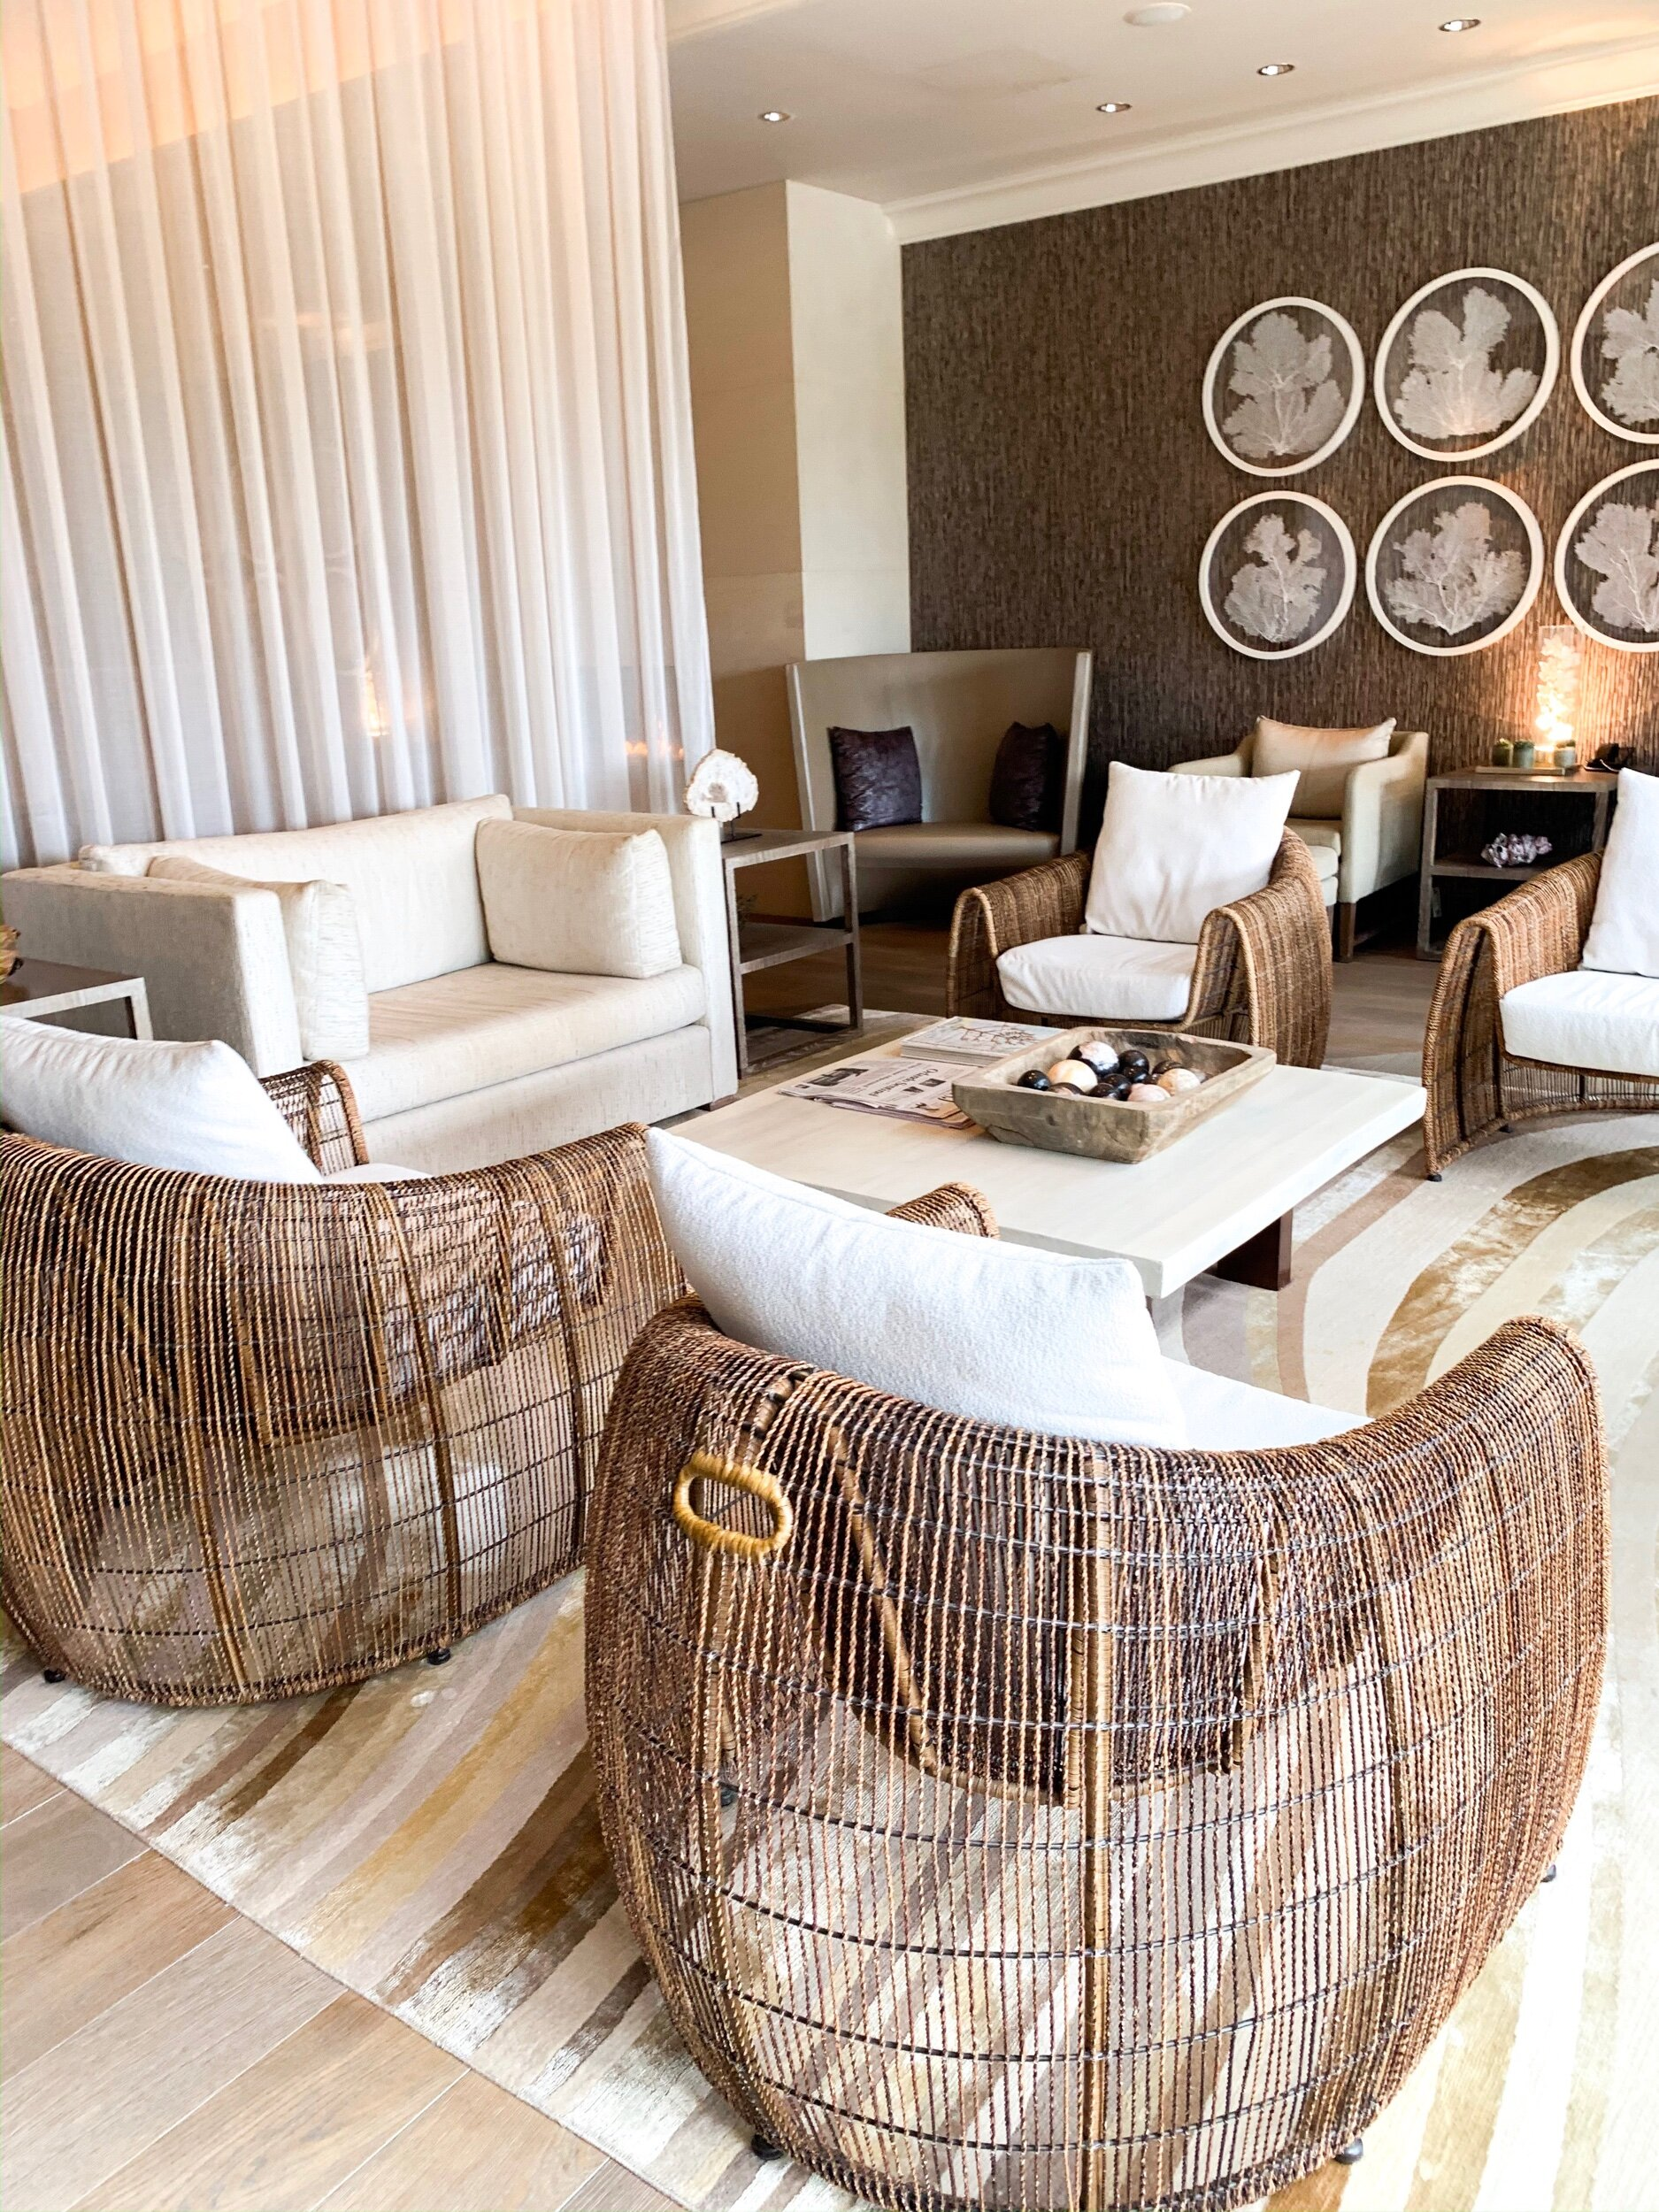 The Spa waiting area